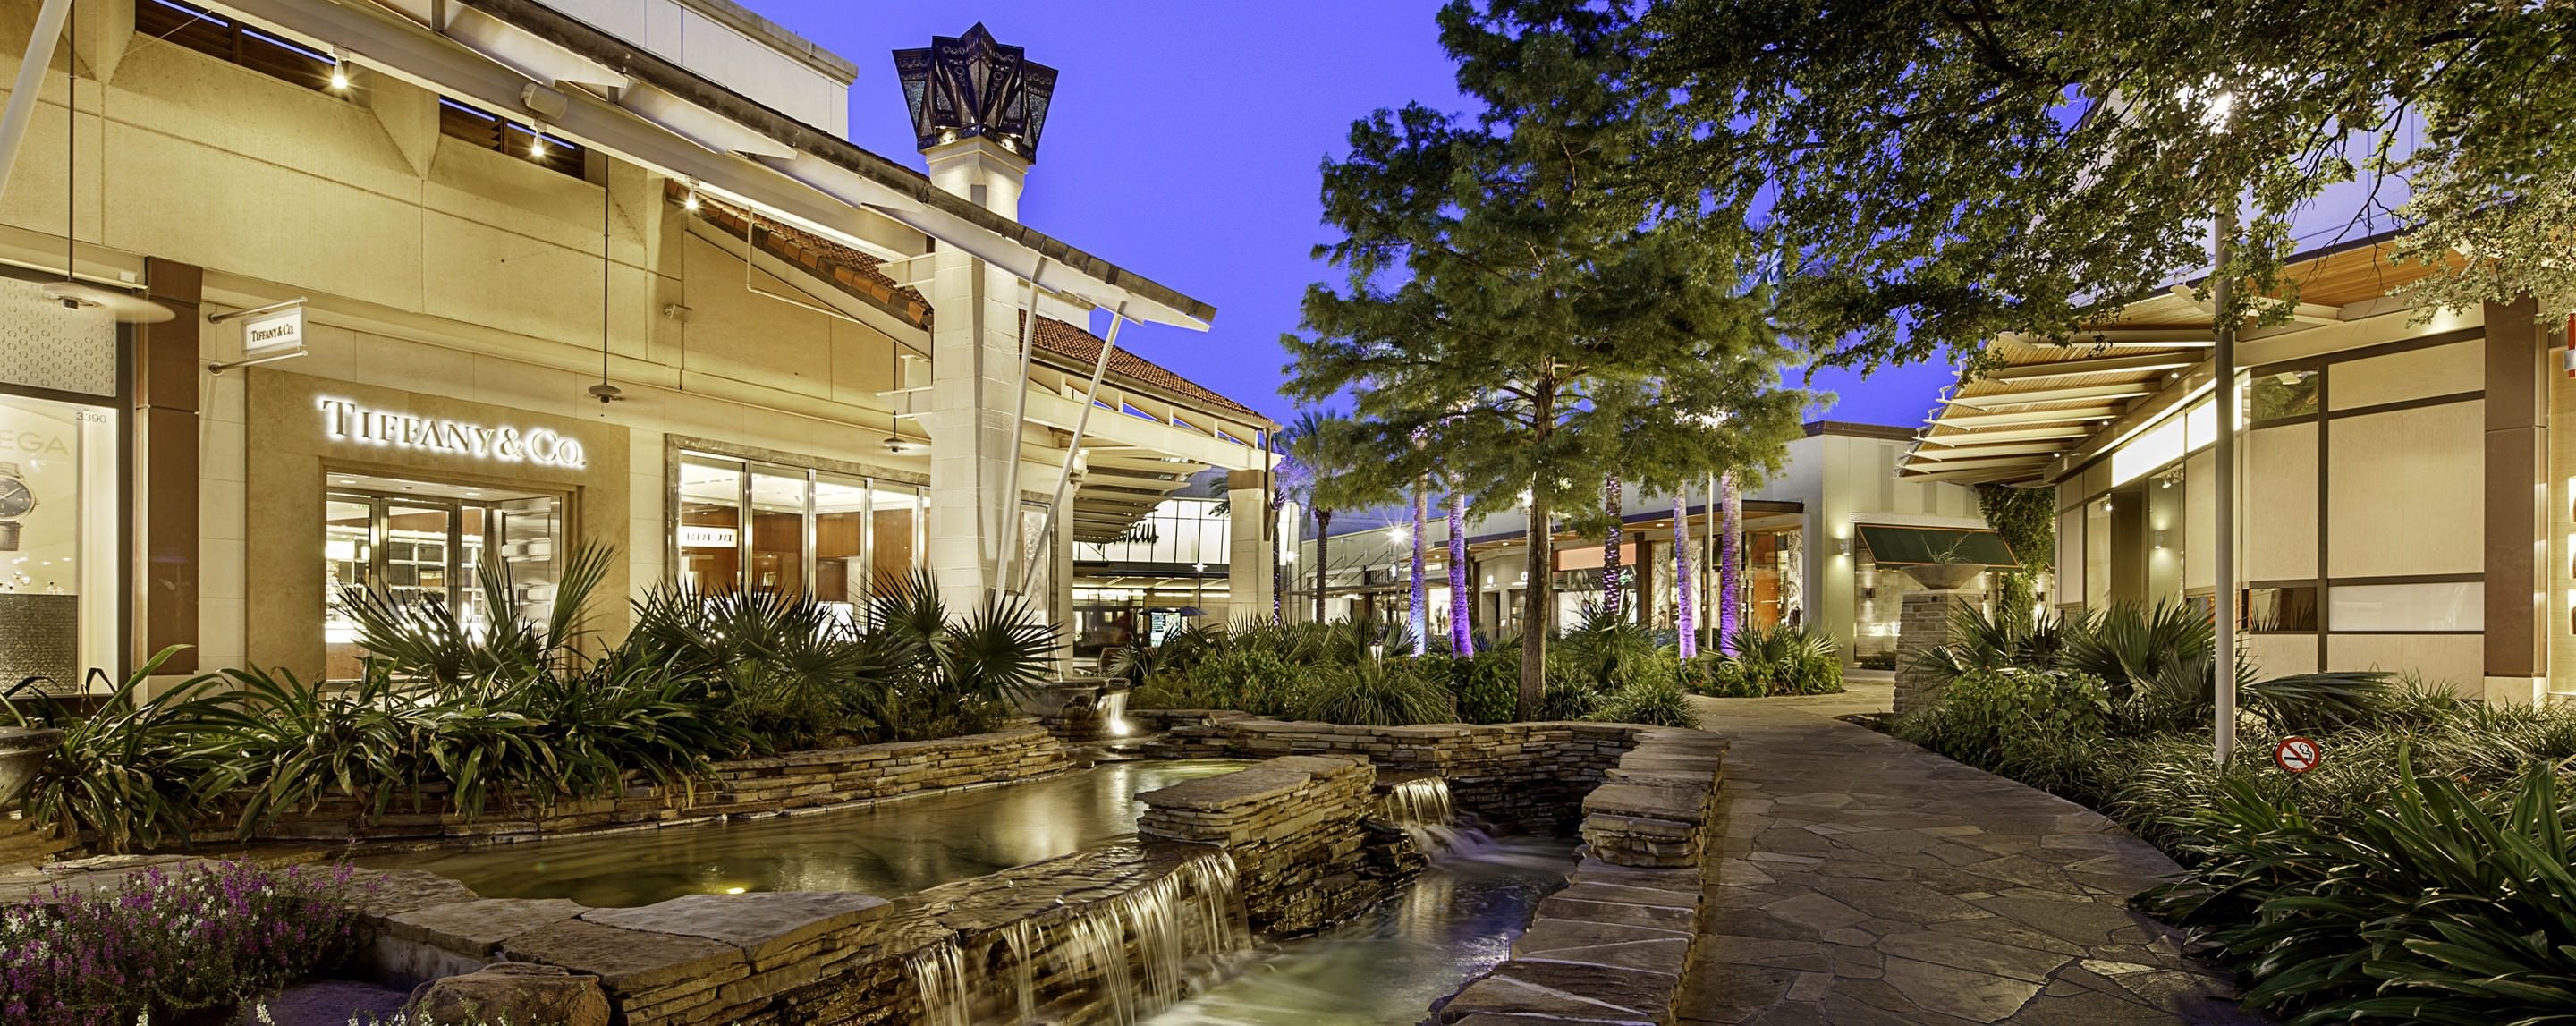 Store fronts light up the exterior walkway at The Shops at La Cantera during the night illuminating the picturesque landscape.